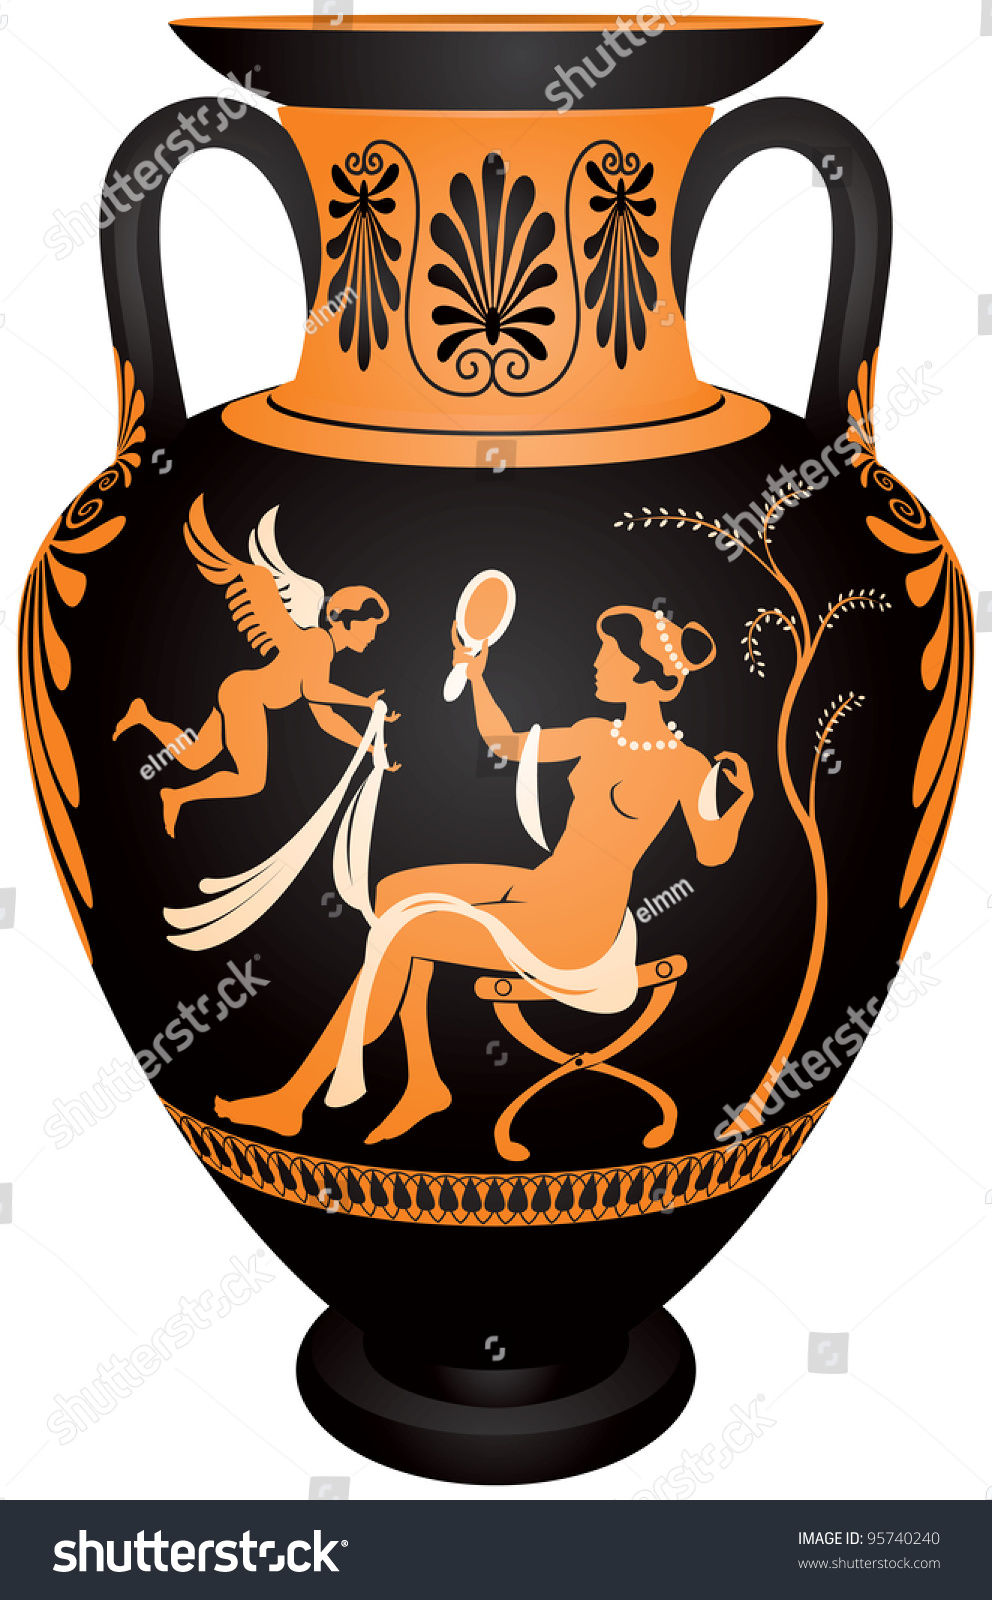 Amphora redfigure vase painting vector images stock vector amphora red figure vase painting vector images greek goddess aphrodite with the mirror reviewsmspy